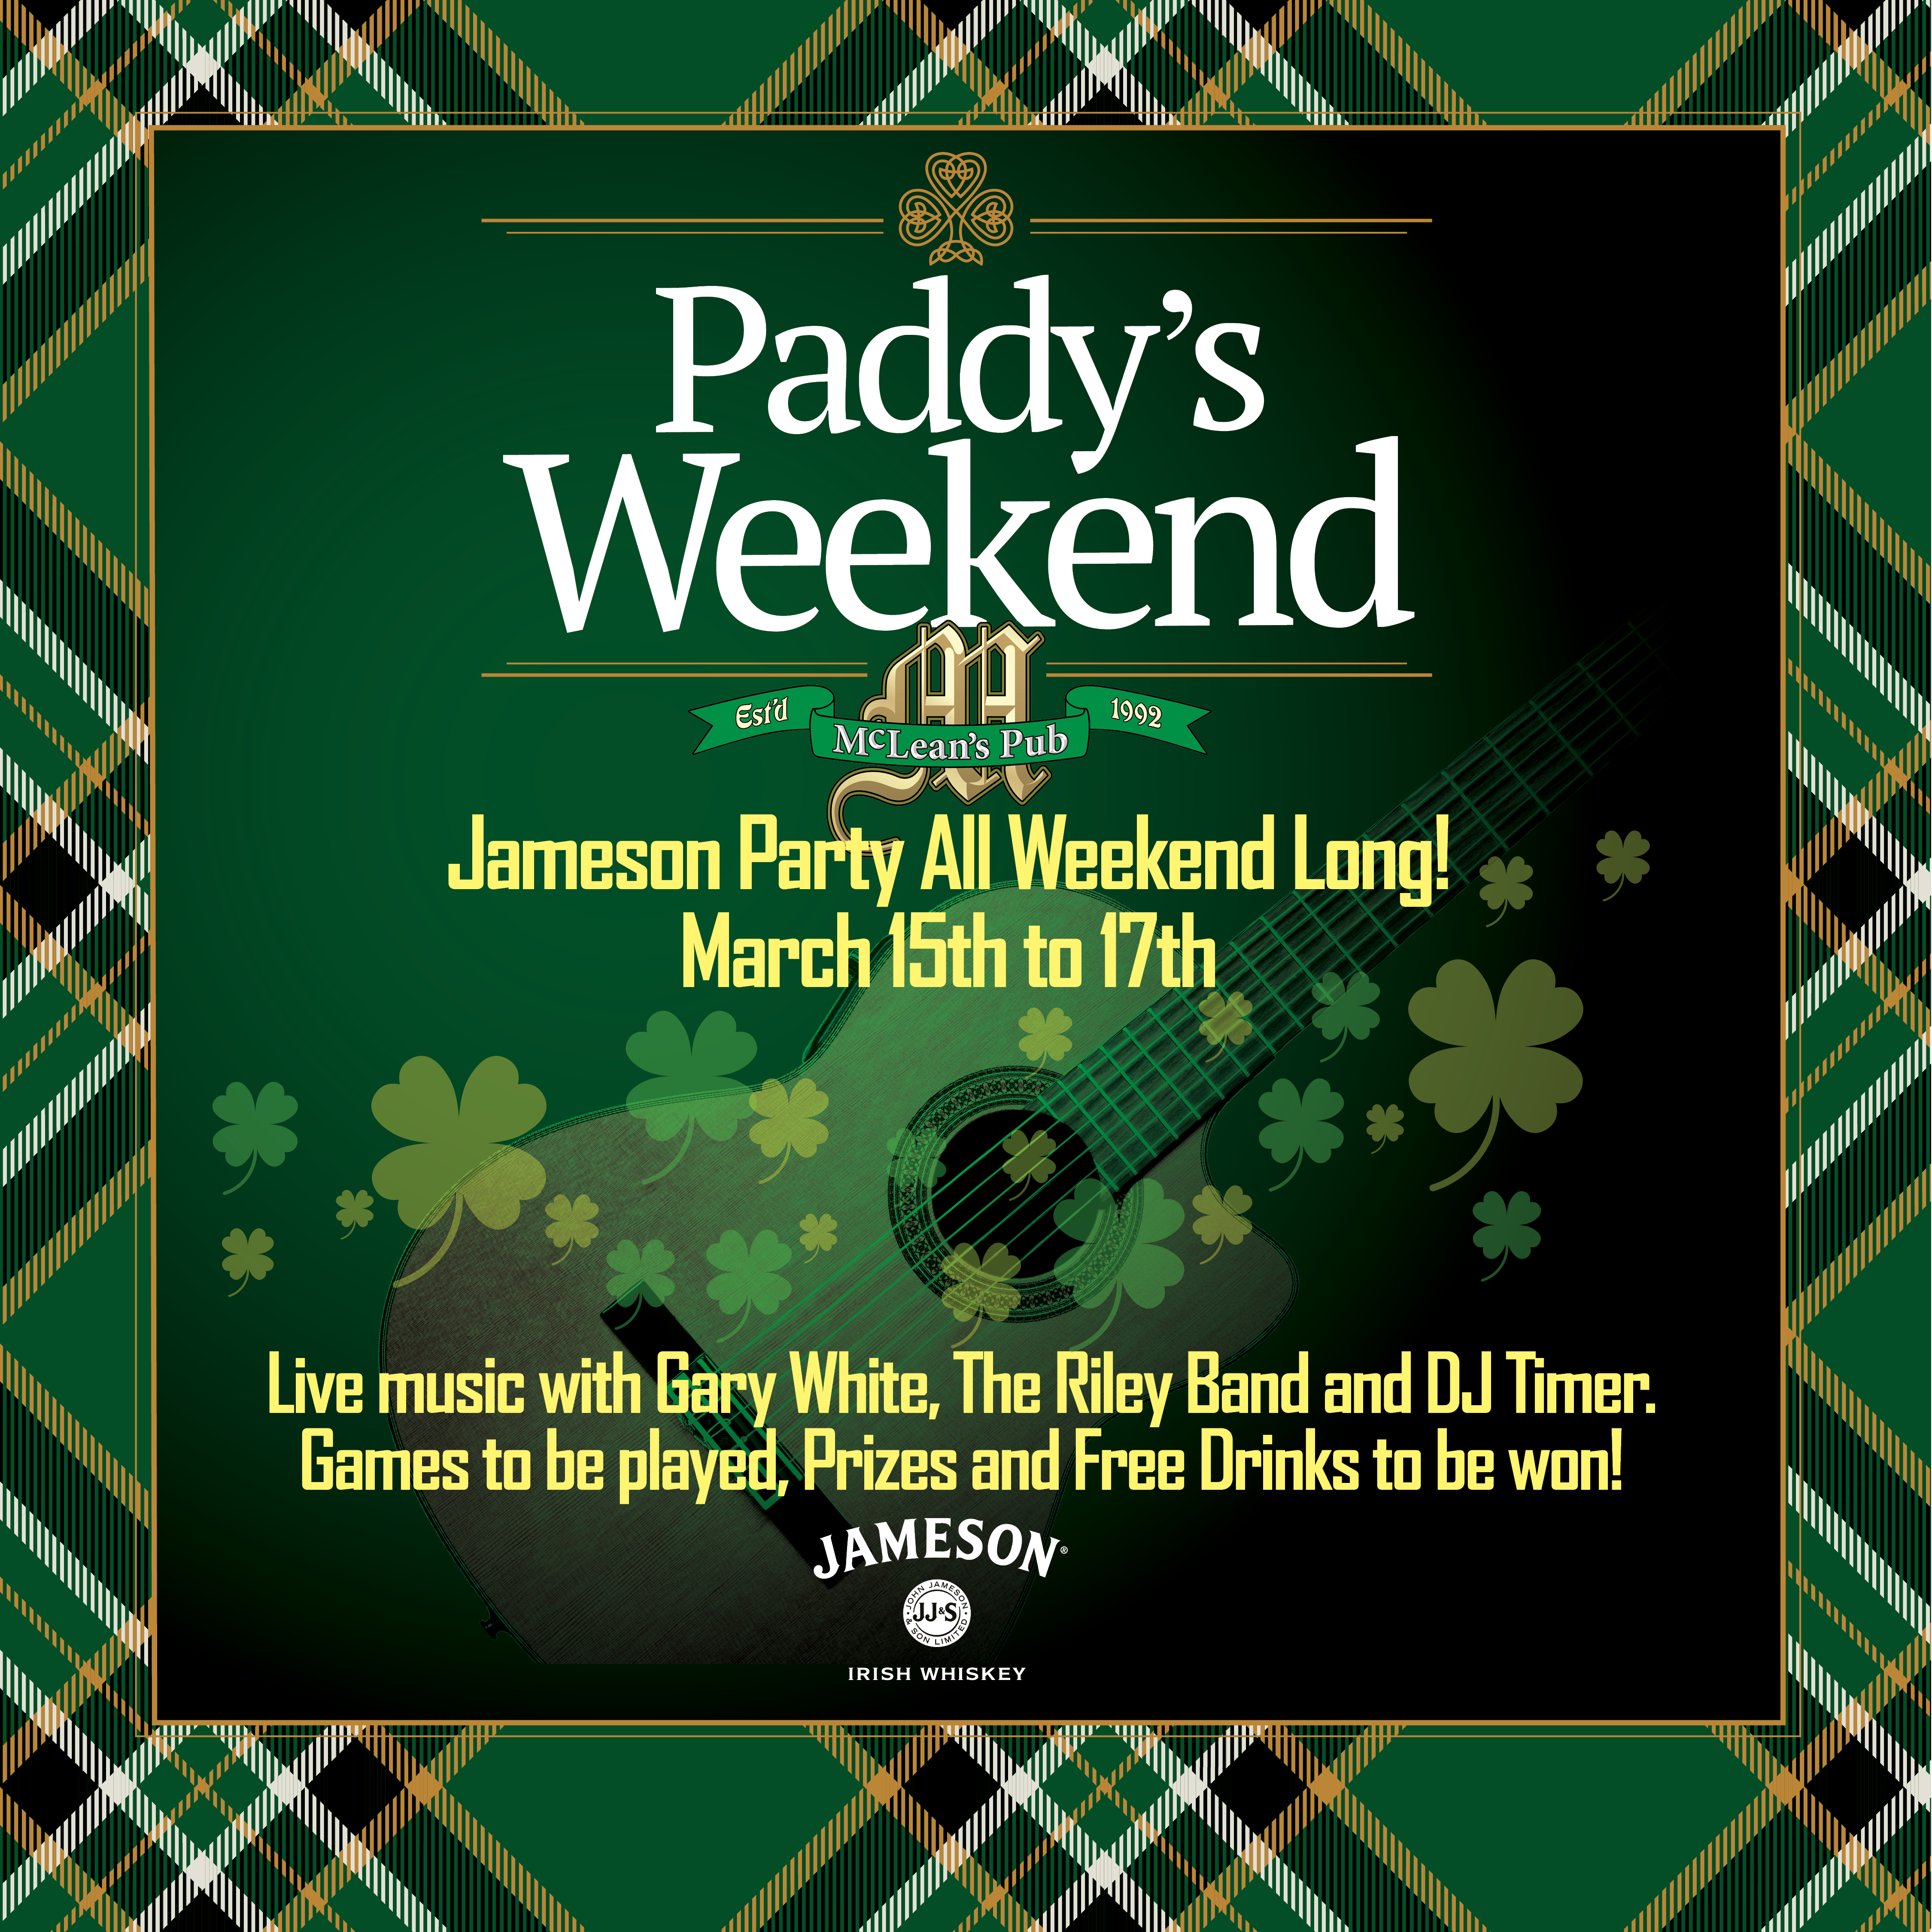 St-Patrick's Weekend!